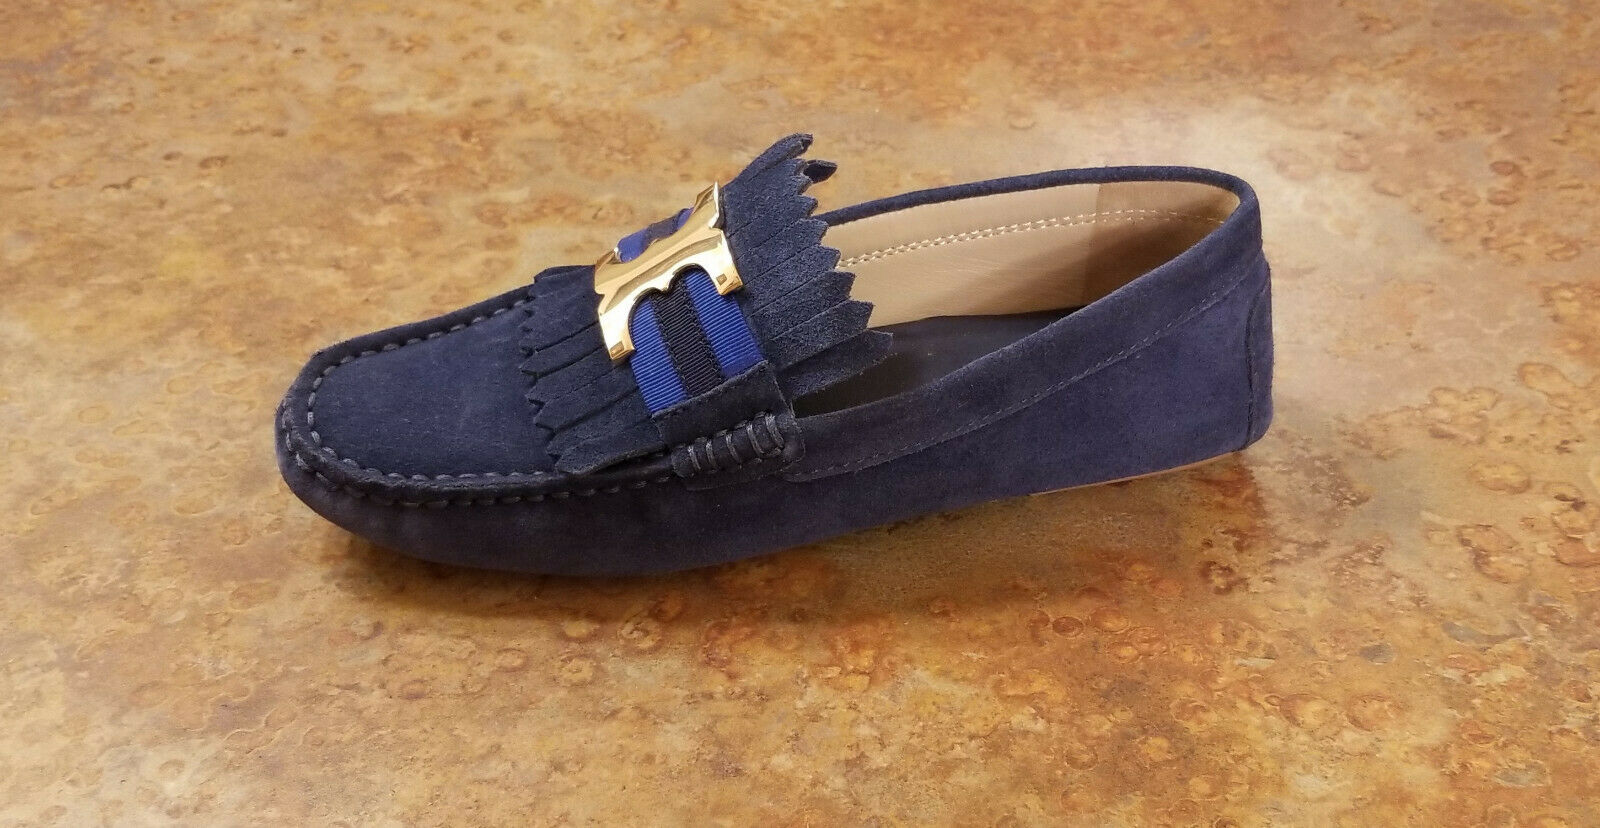 New  Tory Burch 'Gemini Link' Driving Moccasin Loafer Blau Suede 6.5 M MSRP  275